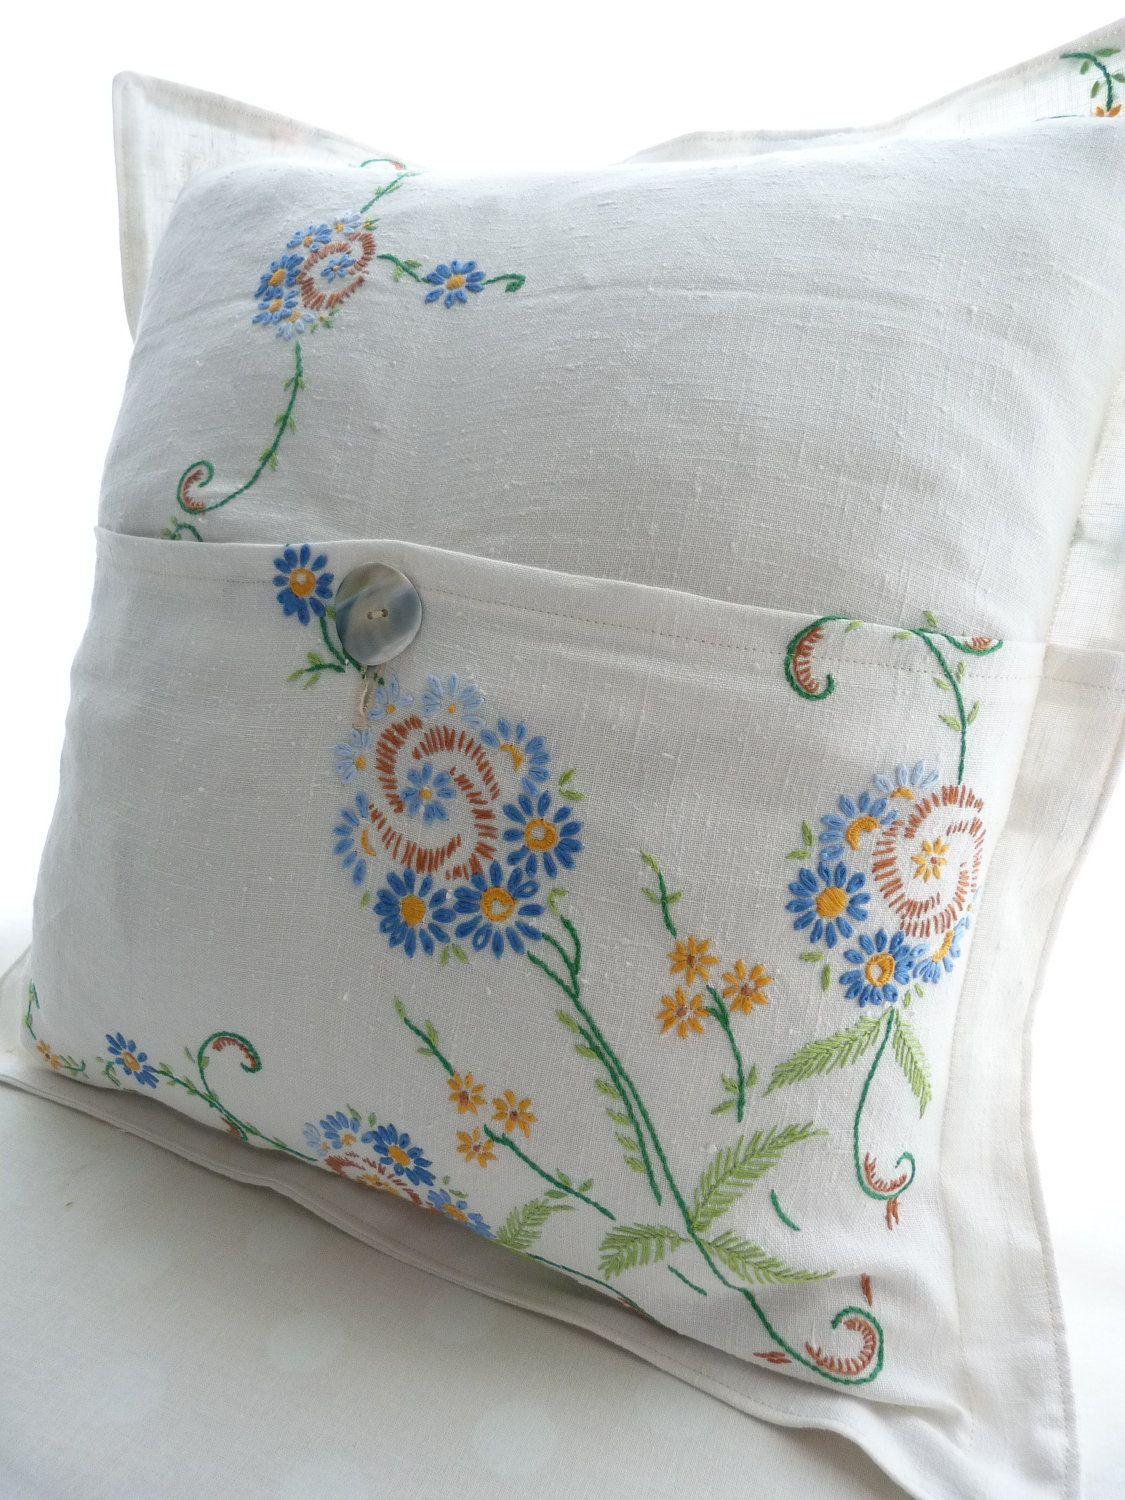 Pillow Cushion Cover Embroidered Vintage Linen Free Shipping Via Etsy Embroidered Pillowcases